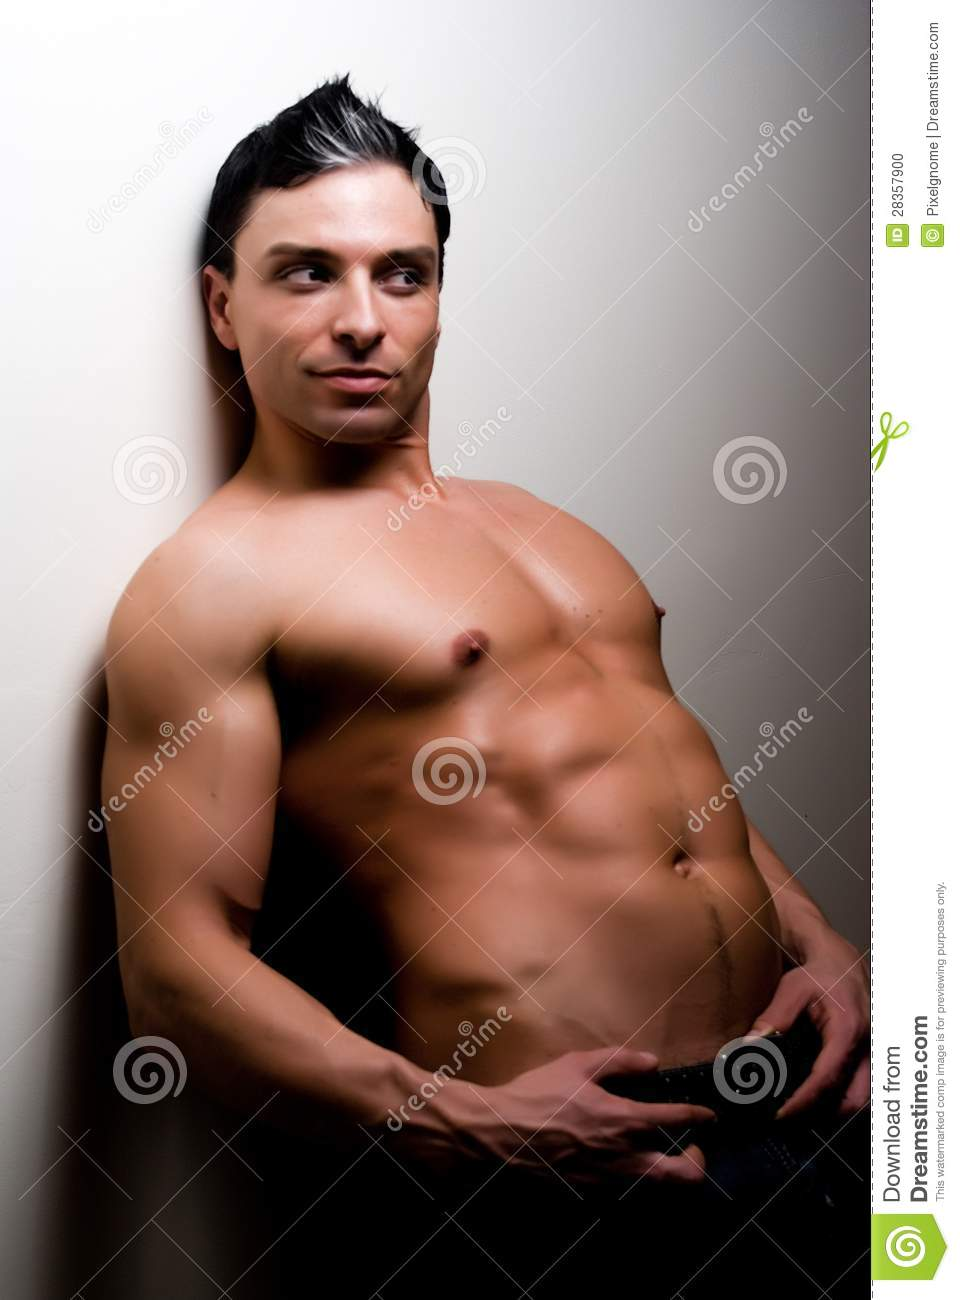 fit, sexy, young male model on a simple background.